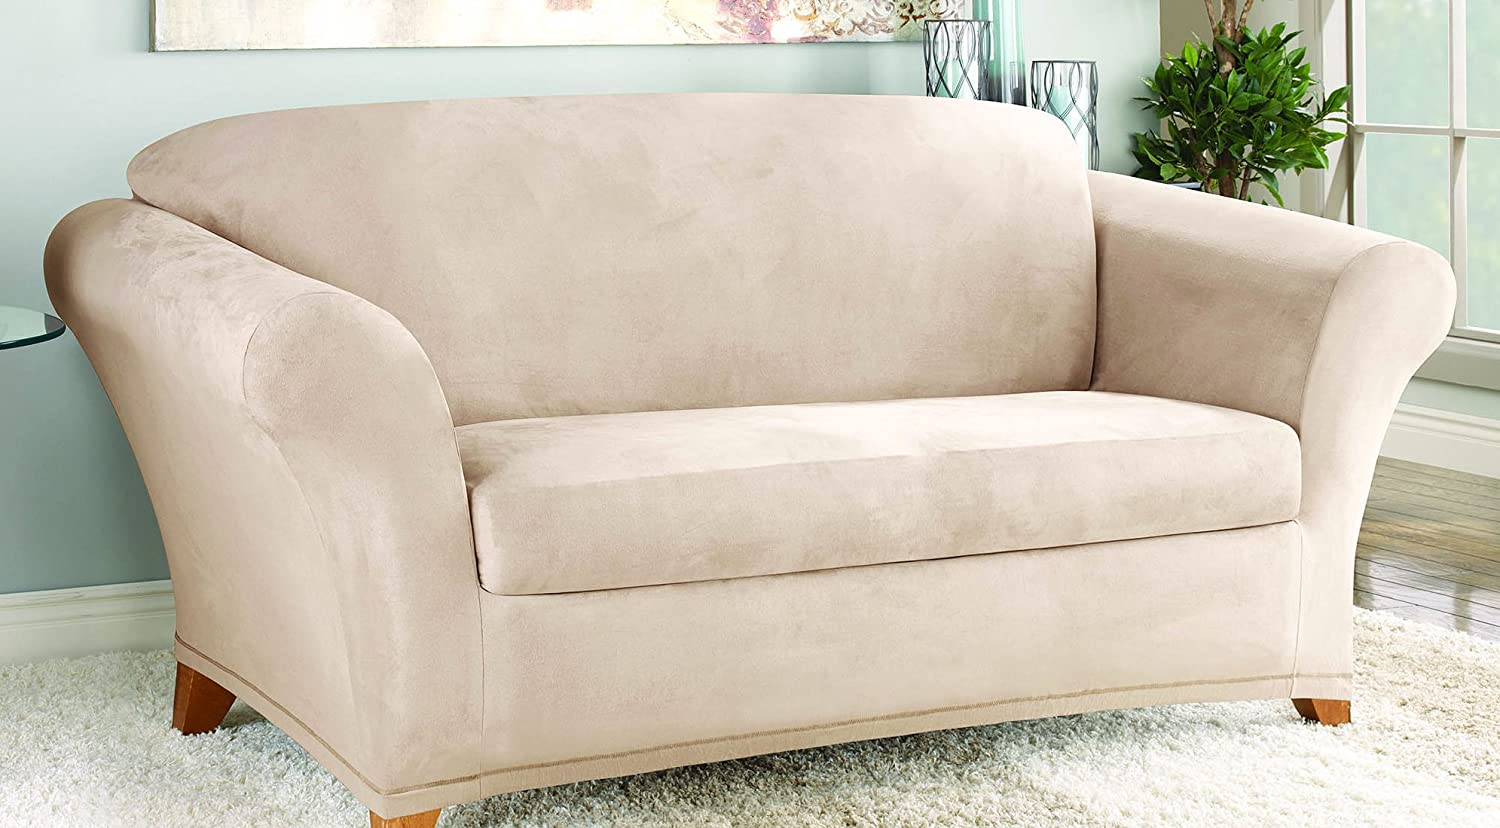 Sure Fit Stretch Suede Loveseat Slipcover - Taupe (SF35544) SureFit